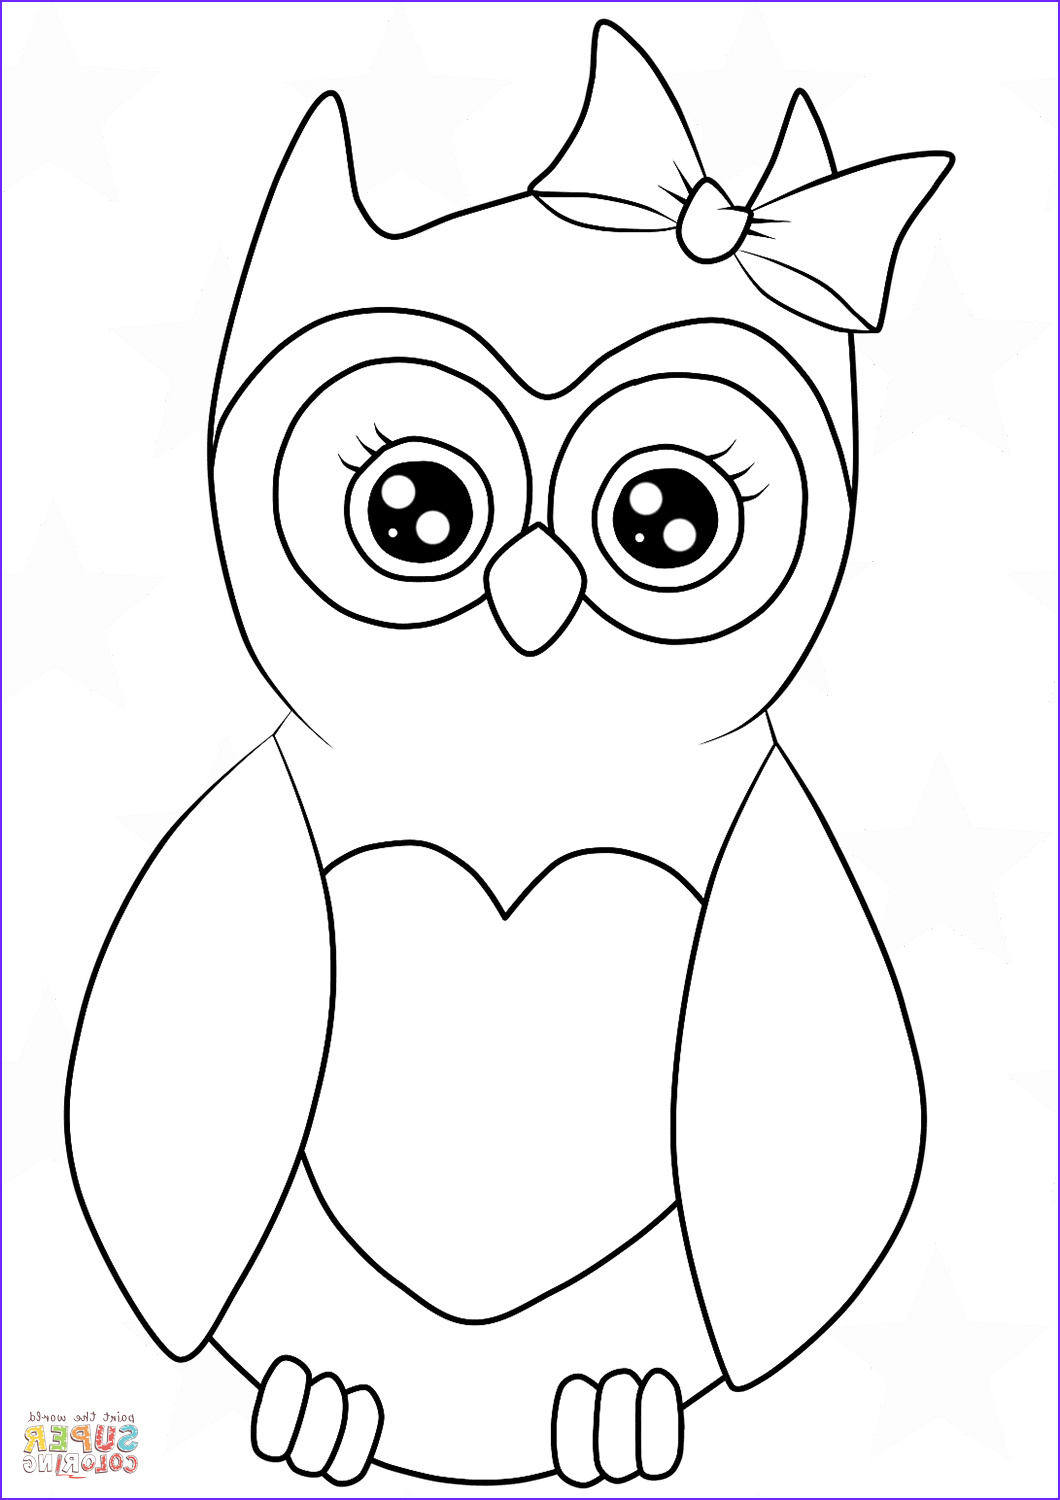 Owl Coloring Elegant Image Cutest Cartoon Owl Coloring Page